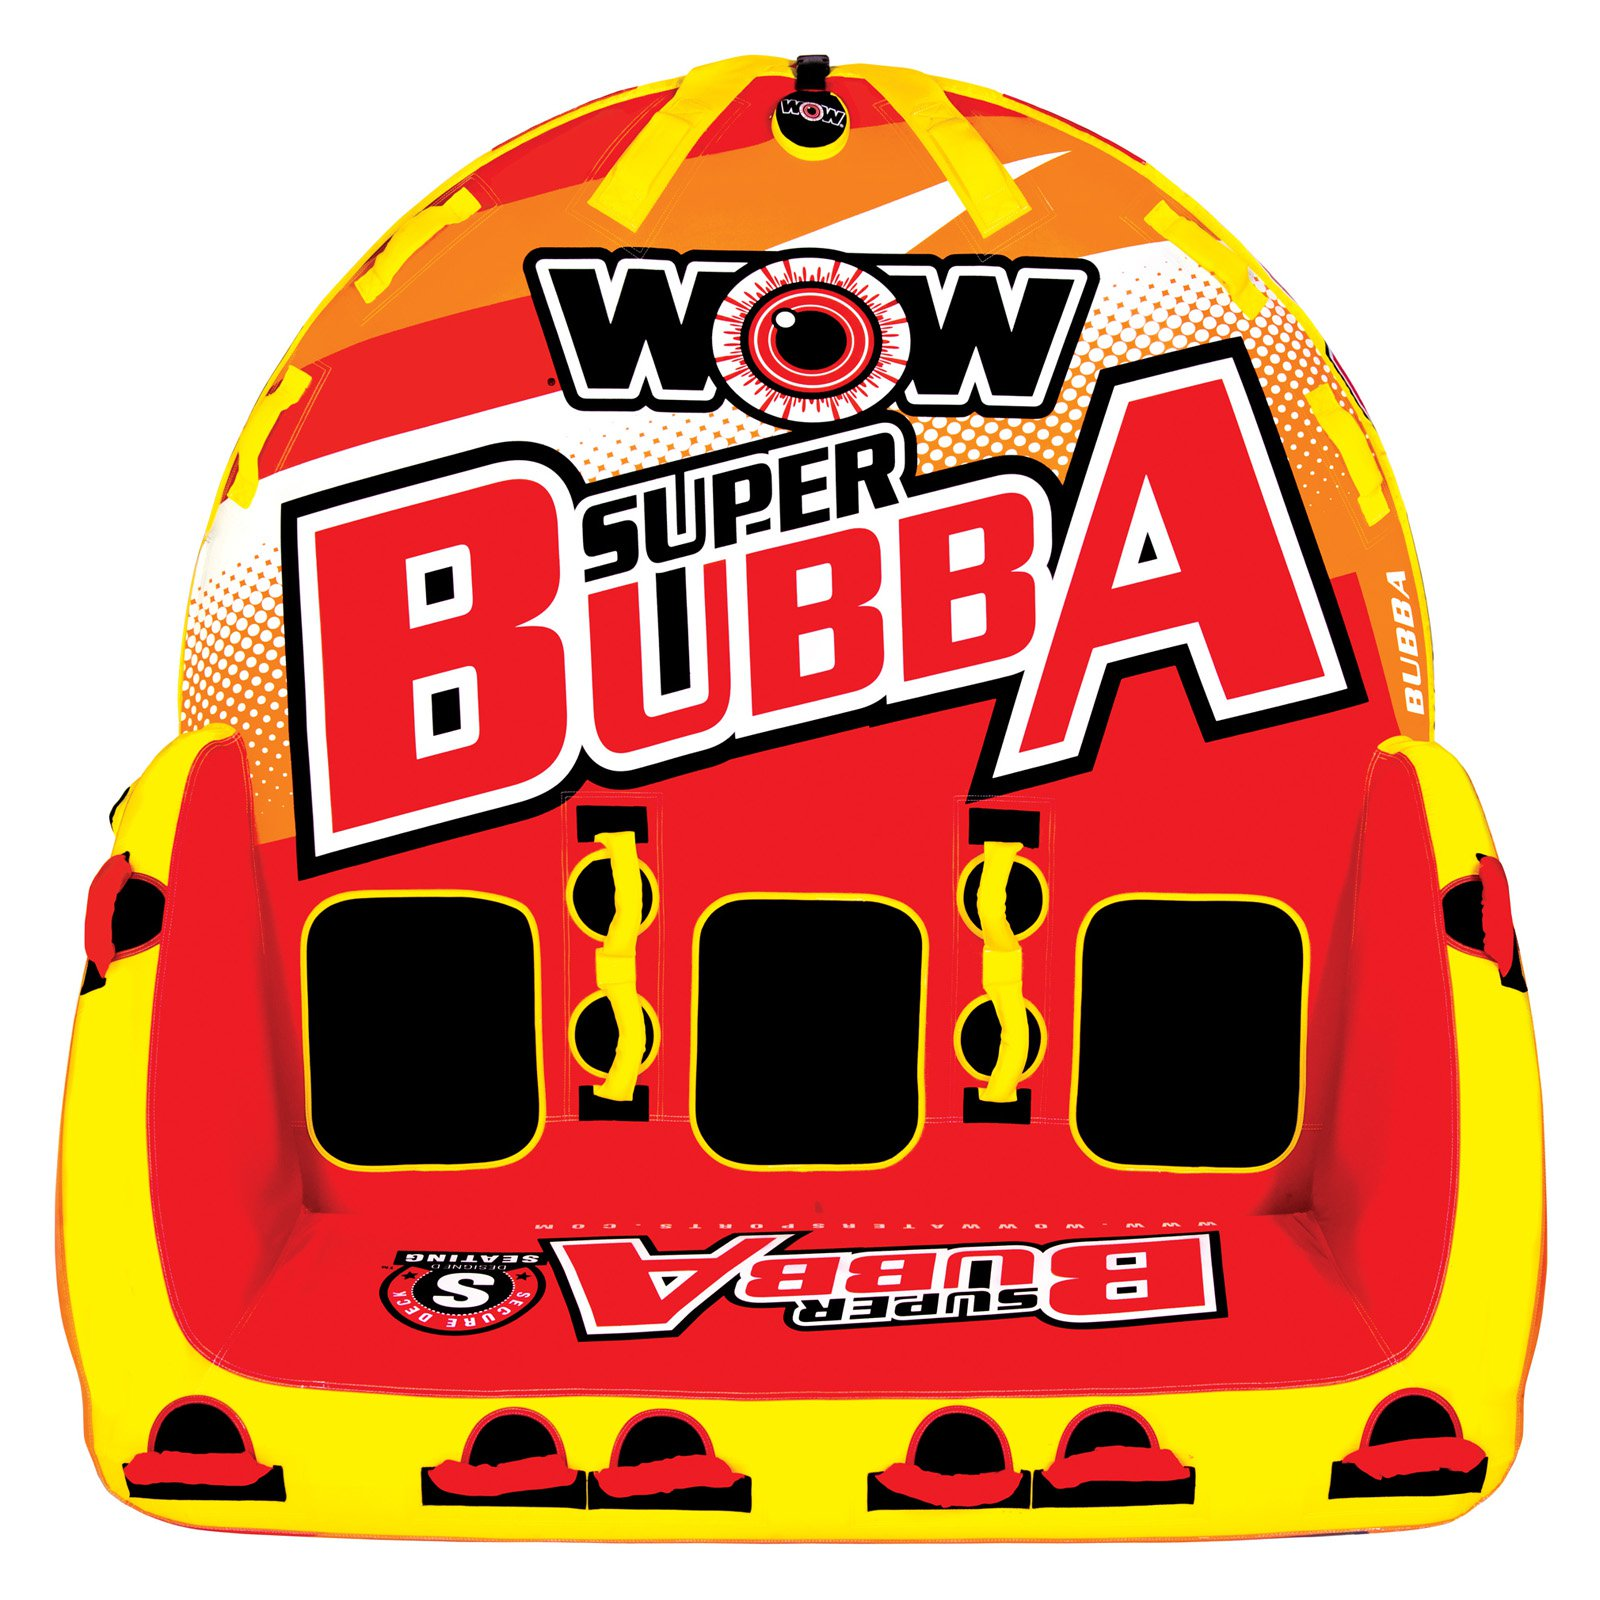 Click here to buy WOW 171060 Super Bubba Hi-Vis Inflatable Towable for 1-3 Riders by WOW Watersports USA.